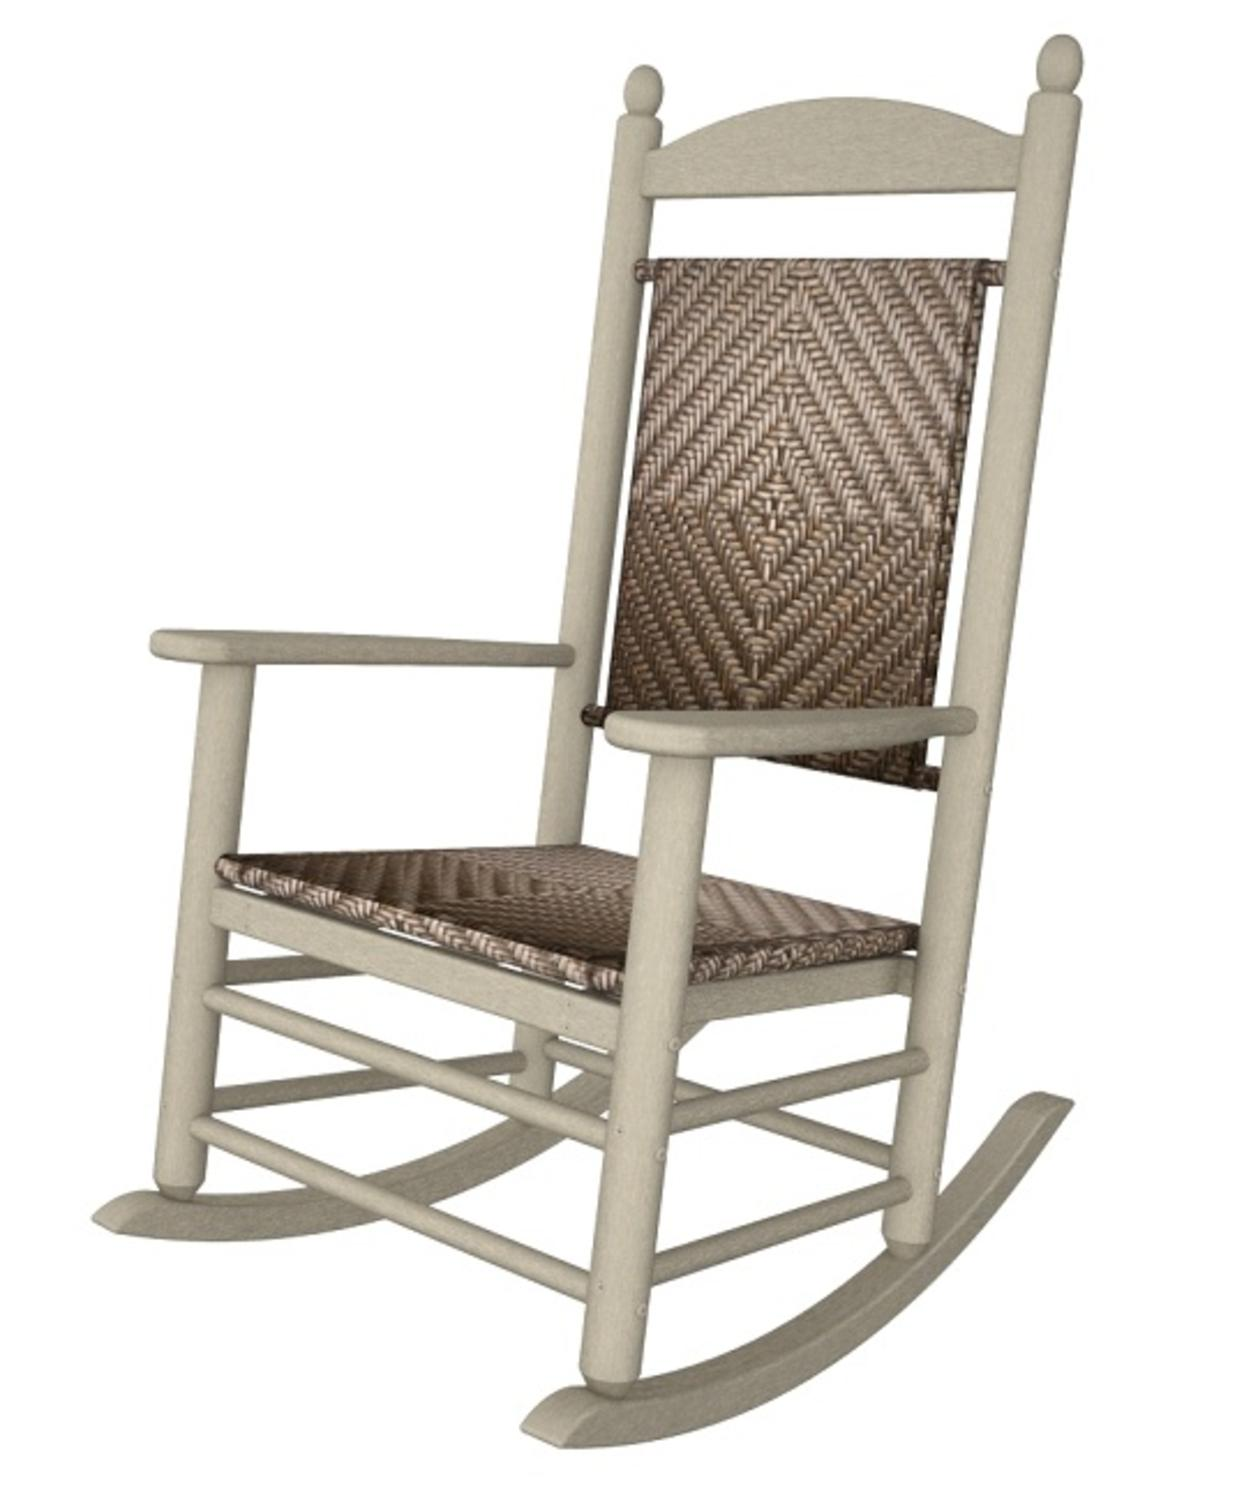 Banana Rocker Chair 47 Quot Earth Friendly Recycled Patio Rocking Chair Sand